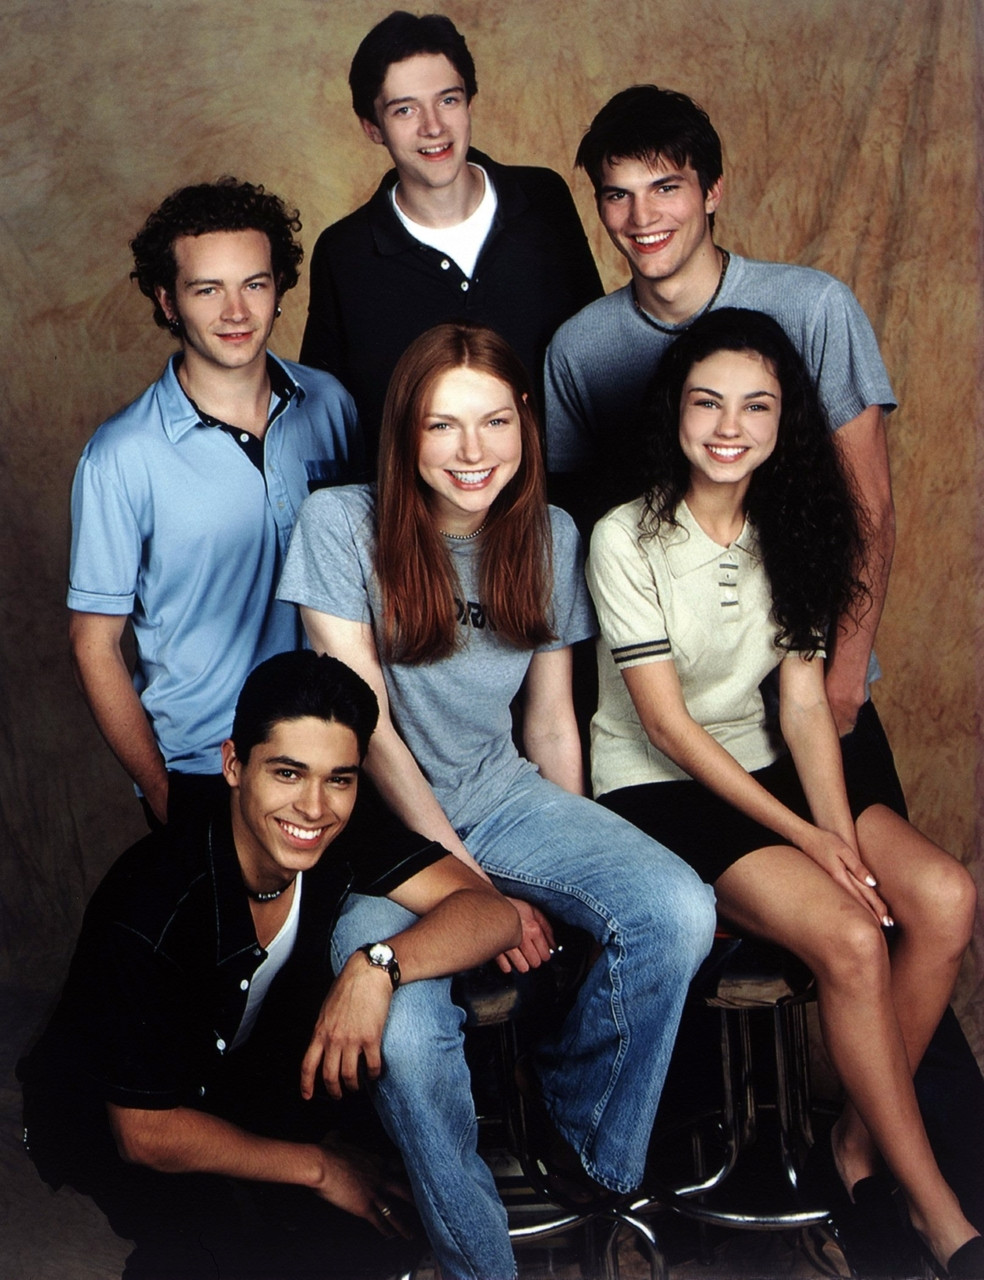 The original casting photo for That 70's Show.